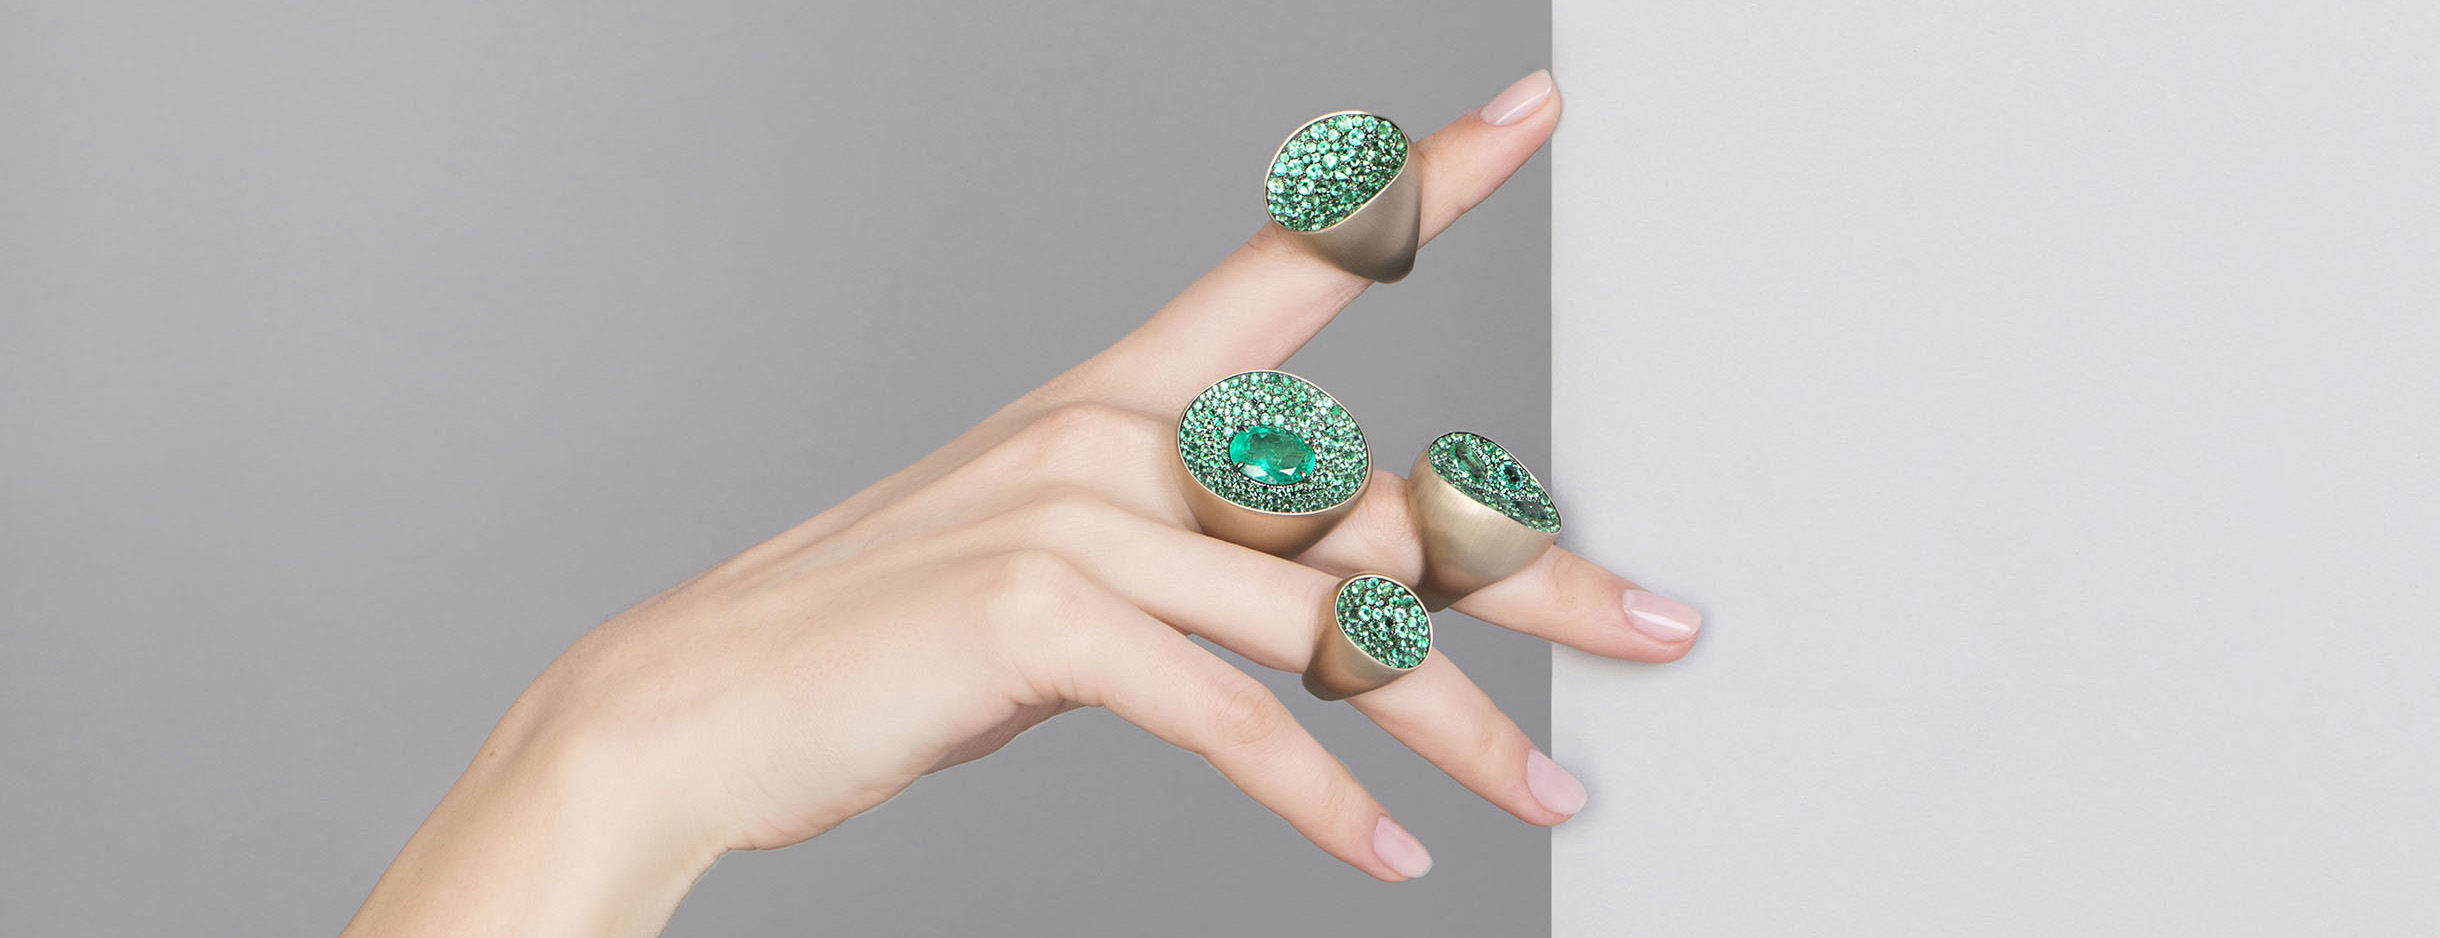 Antonini 18ct gold and emerald rings from the Extraordinaire collection